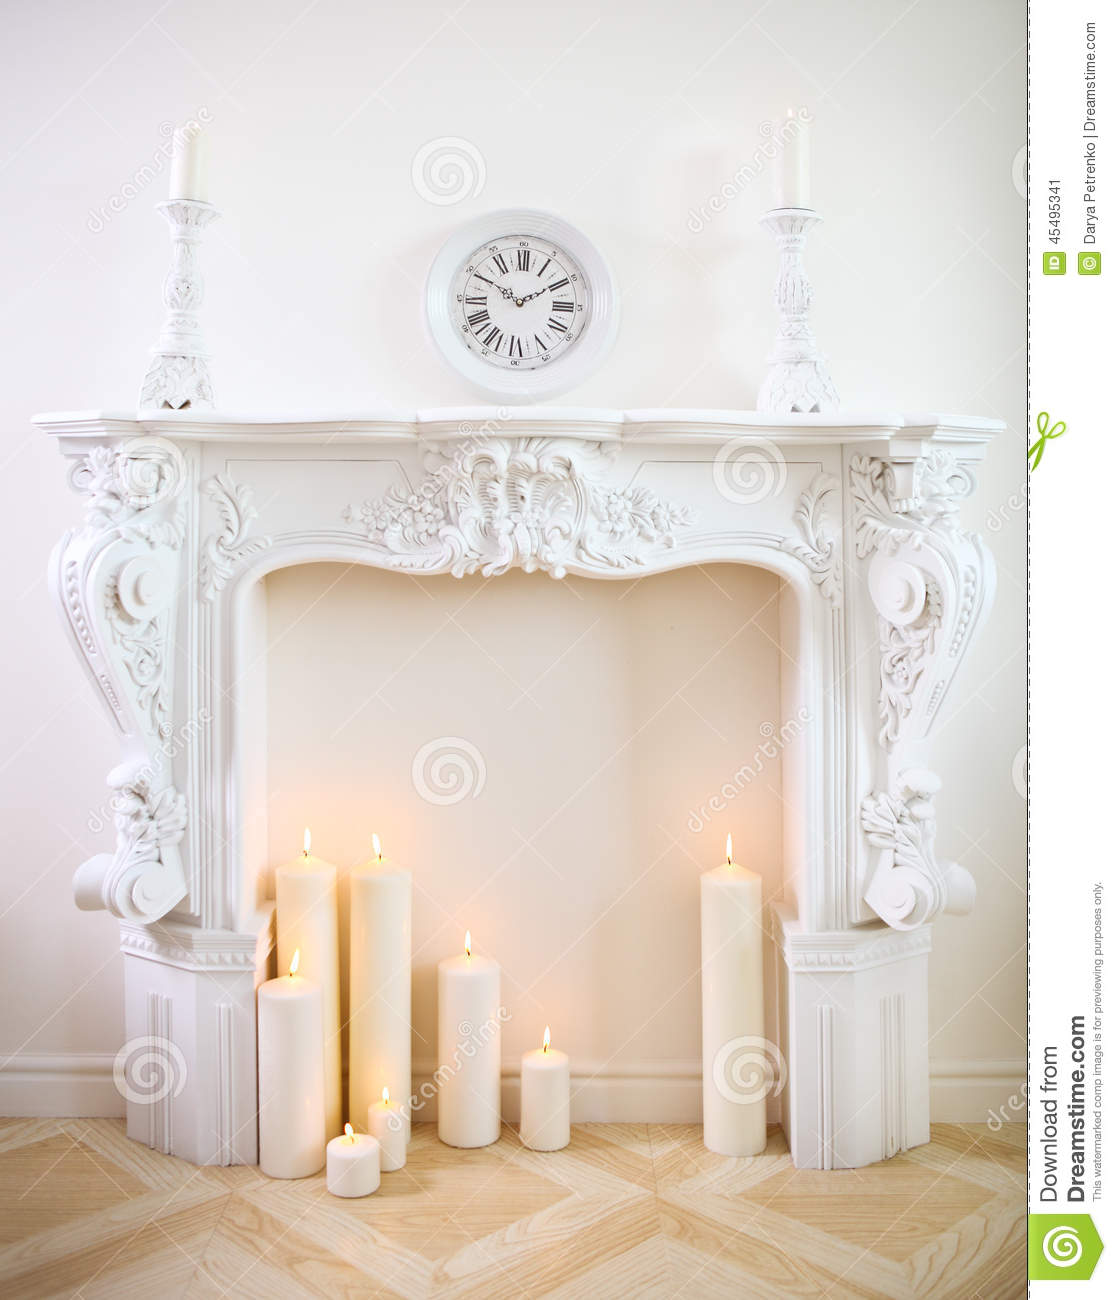 decorative fireplace with candles stock image image of golden light 45495341. Black Bedroom Furniture Sets. Home Design Ideas